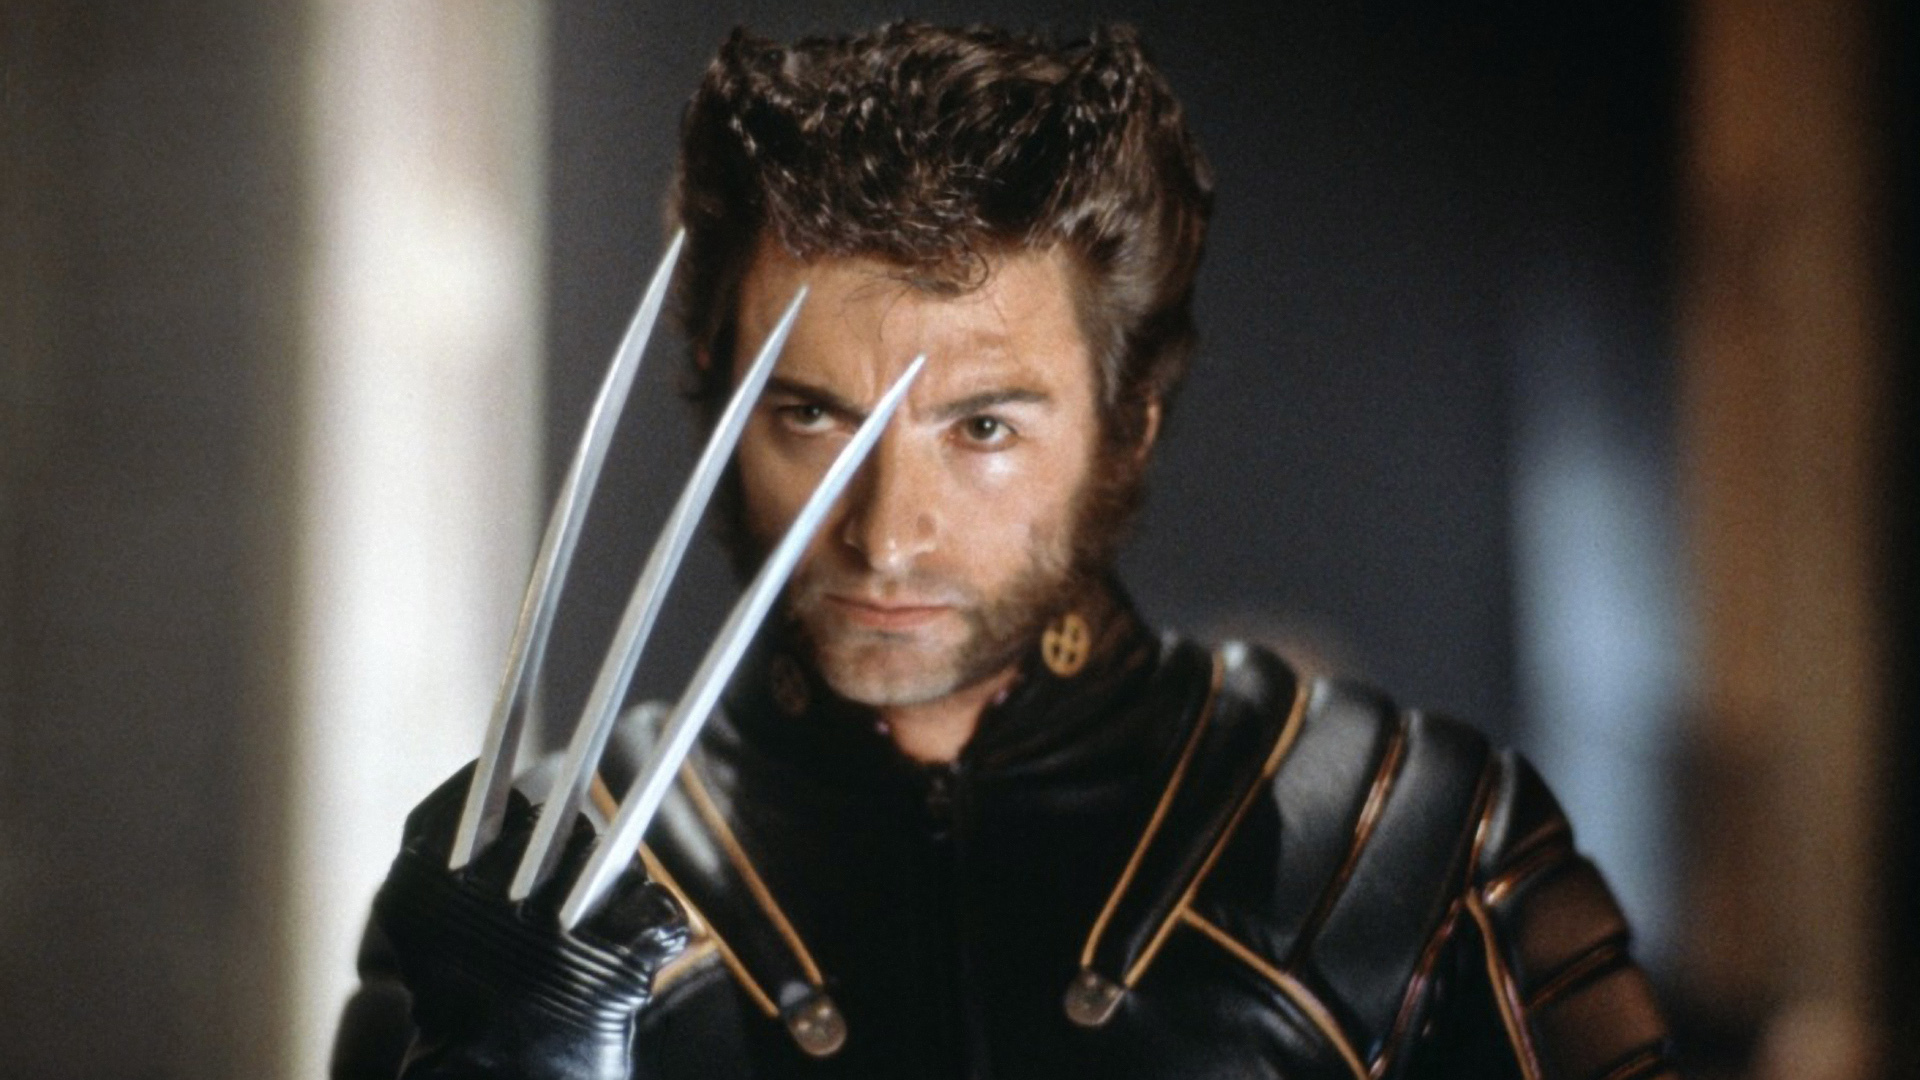 For the sound of the claws exiting and entering Wolverine's flesh, they combined the sound of a blade being drawn from its sheath with the sounds of cracking nuts and, once again, chicken. (Photo: Marvel Comics/Release)